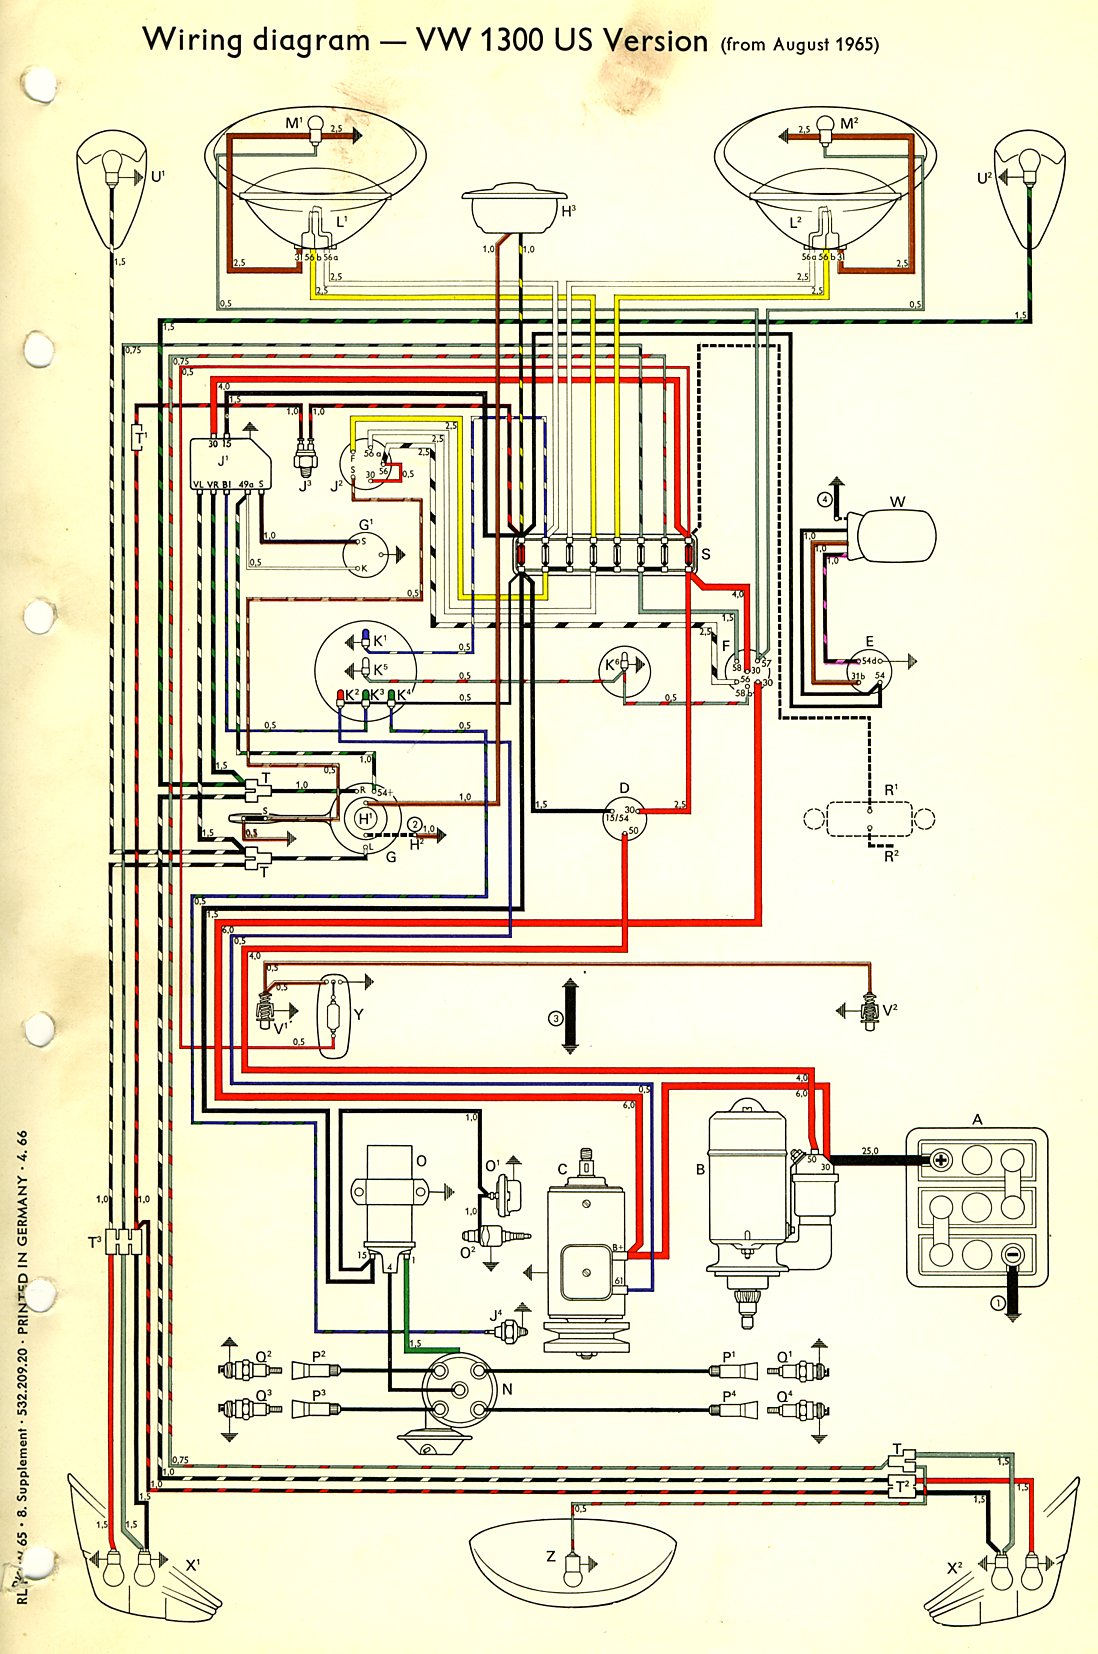 thesamba com type 1 wiring diagrams rh thesamba com vw beetle wiring diagram 1967 1967 vw beetle wiper motor wiring diagram